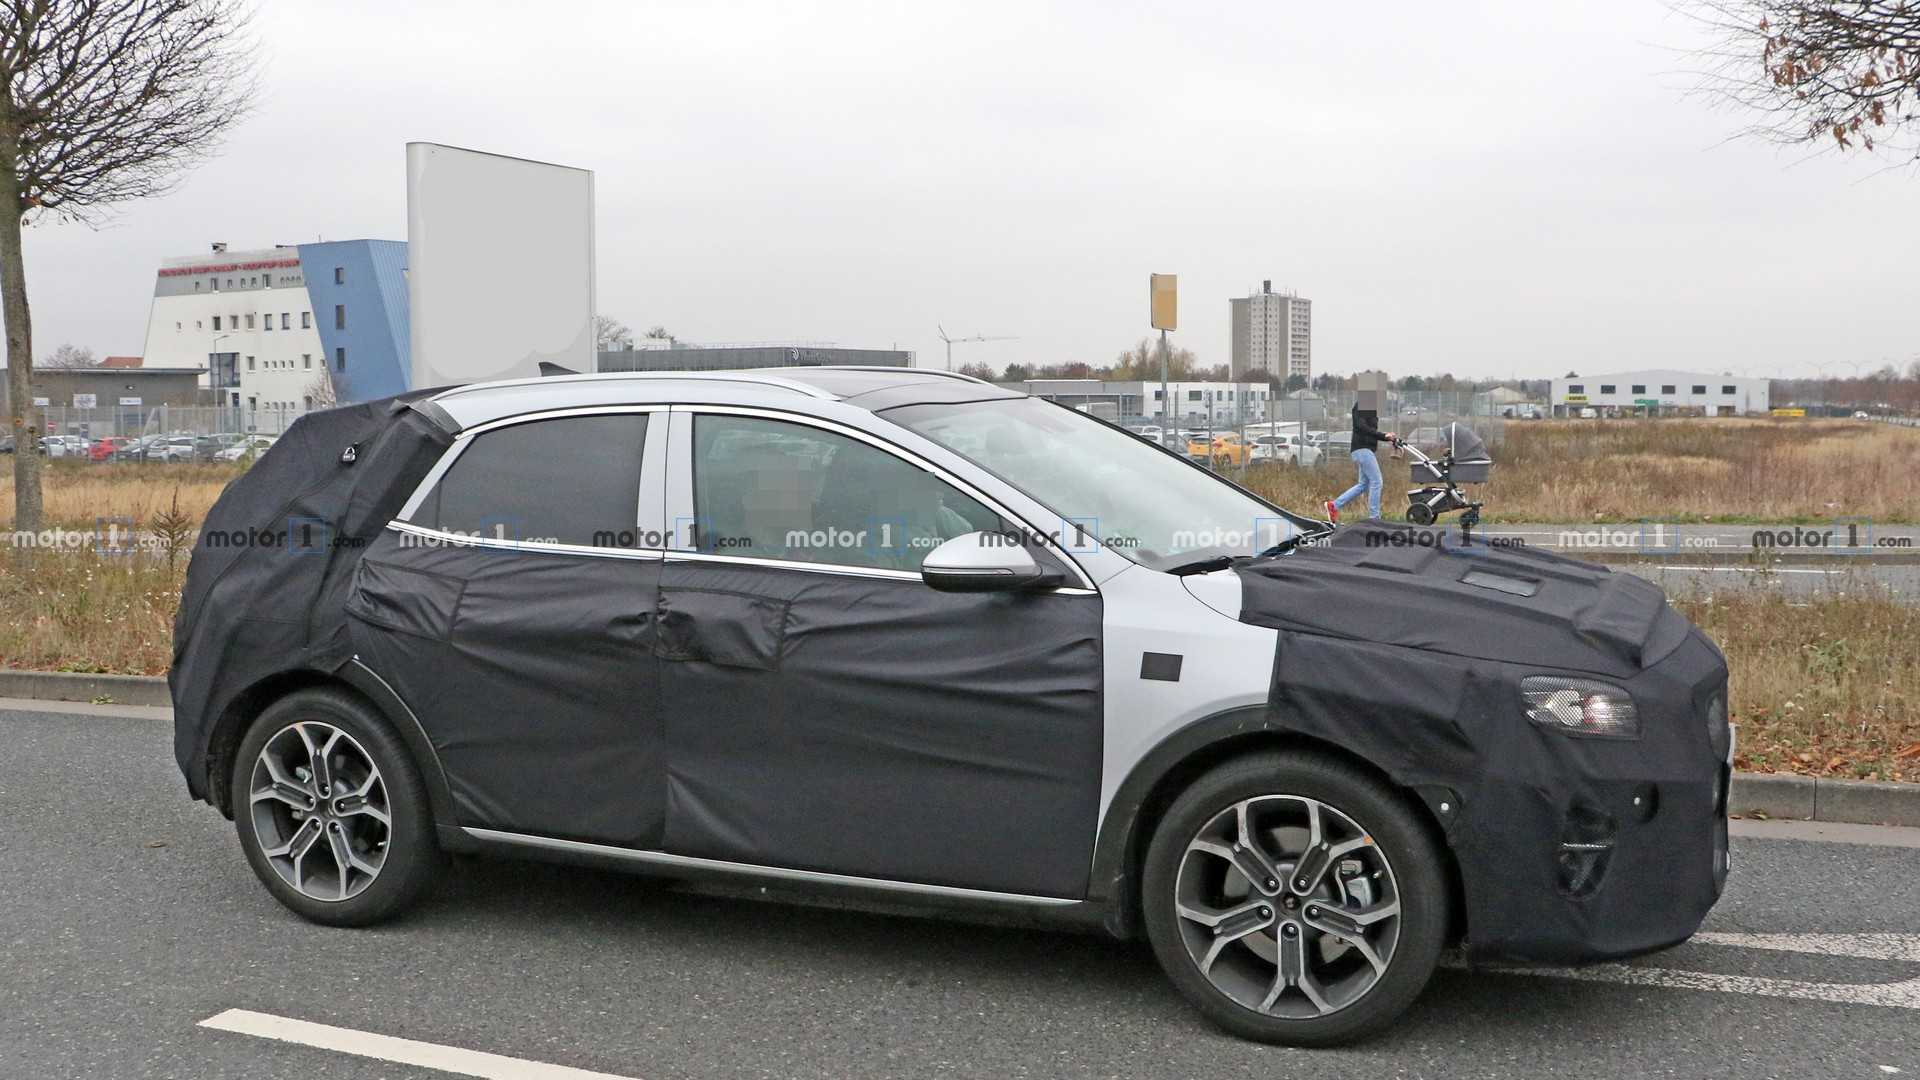 80 All New Kia Ceed 2020 Price And Review